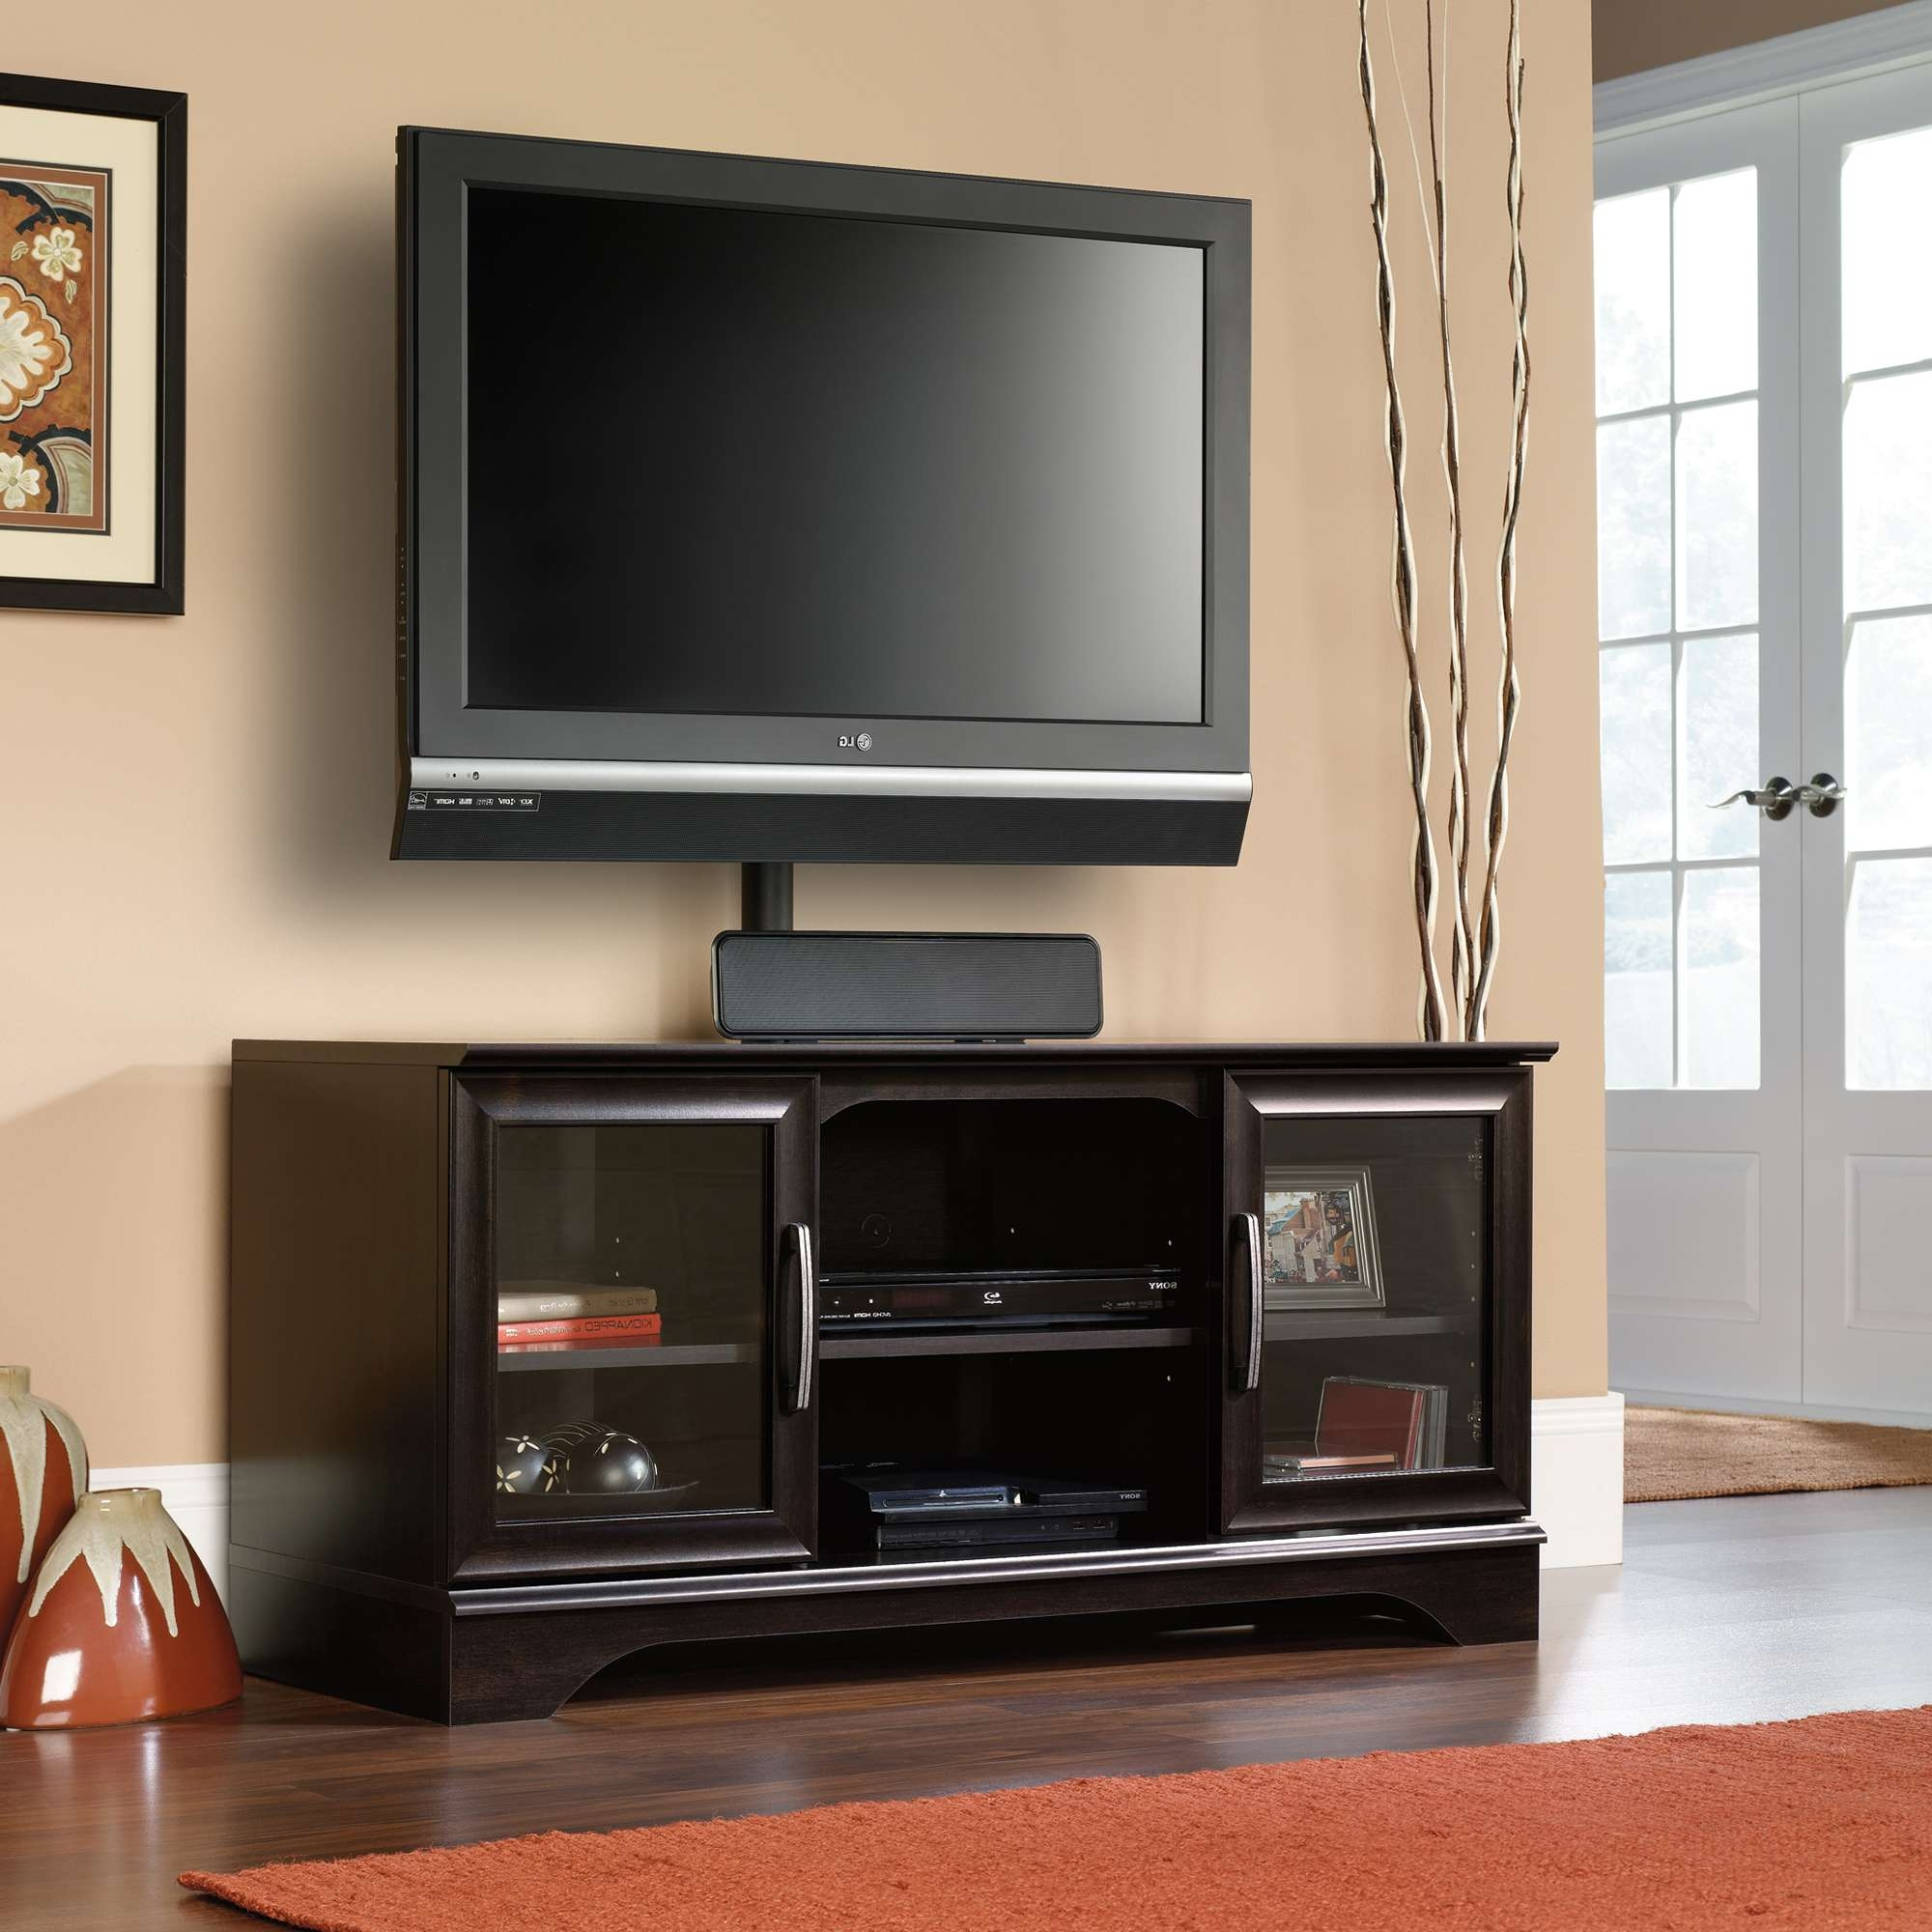 Wood Tv Standh Mount Solid Mountwood Swivel Storage Stands Flat Throughout Wood Tv Stands With Swivel Mount (View 3 of 15)